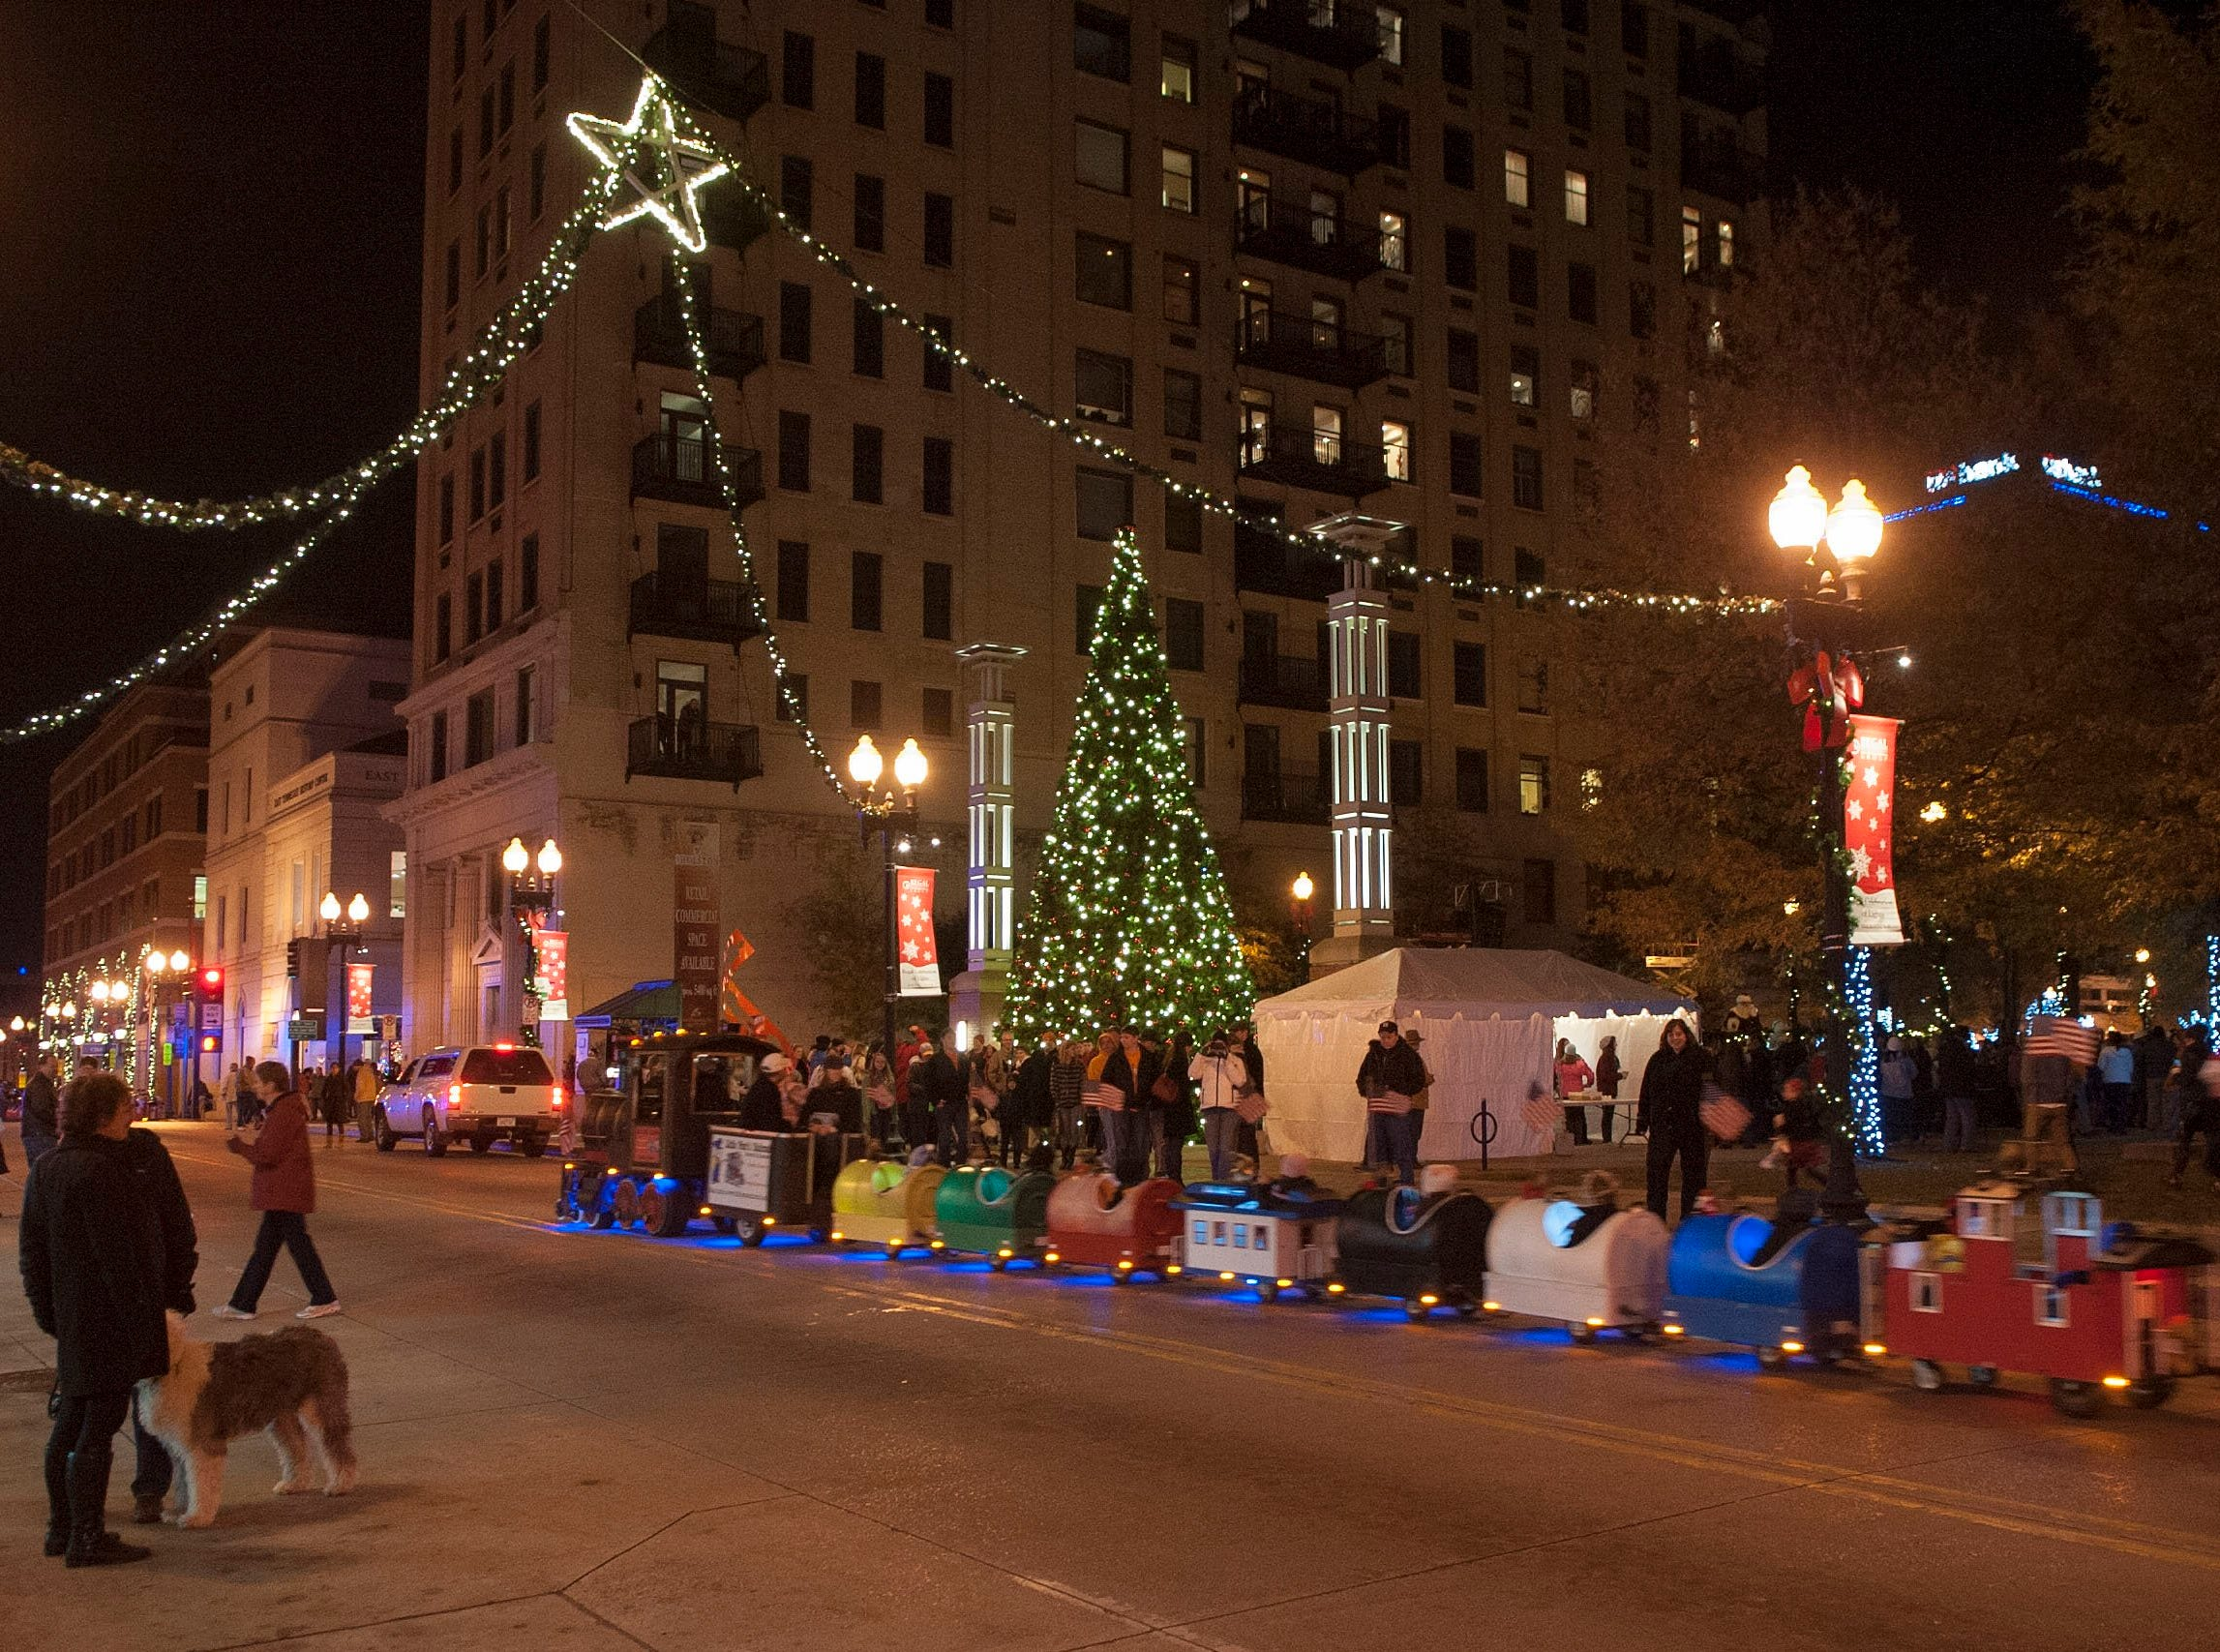 The Polar Express was offering rides to children on Gay Street at the Regal Celebration of Lights Friday night, kicking off Christmas in the city. Mayor Madeline Rogero was joined by David Ownby, Regal Entertainment CFO and Santa Claus the City of Knoxville turned on Christmas tree.